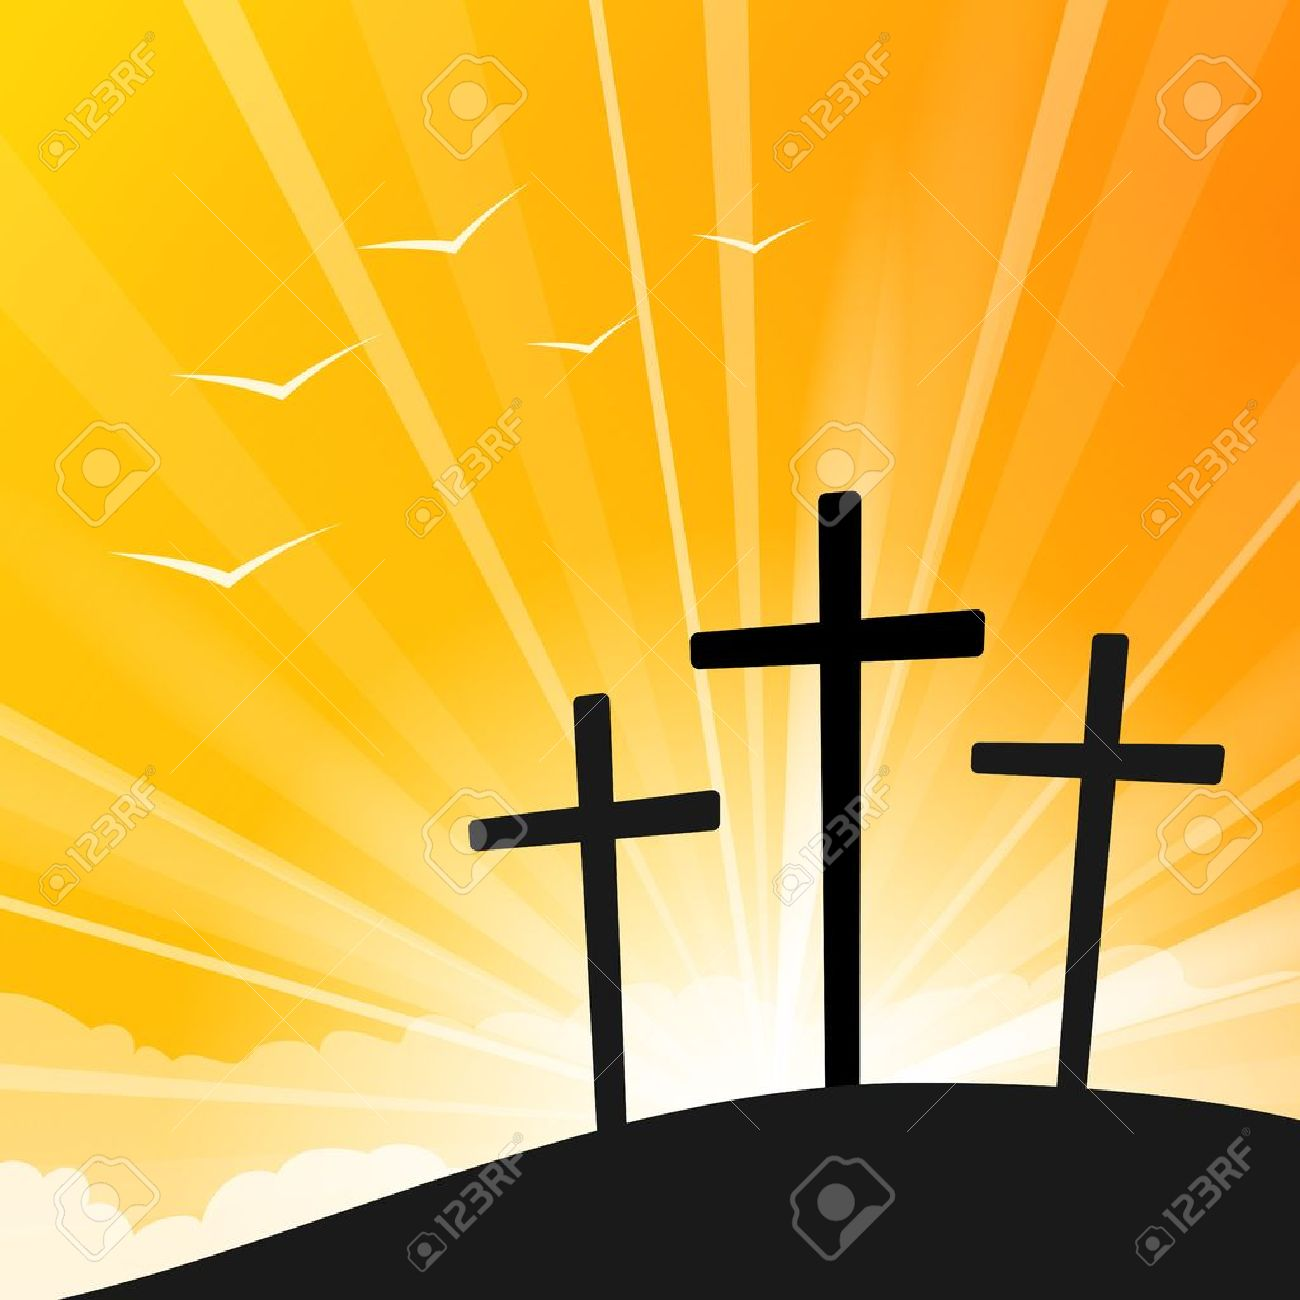 243 Easter Crosses Stock Vector Illustration And Royalty Free ...